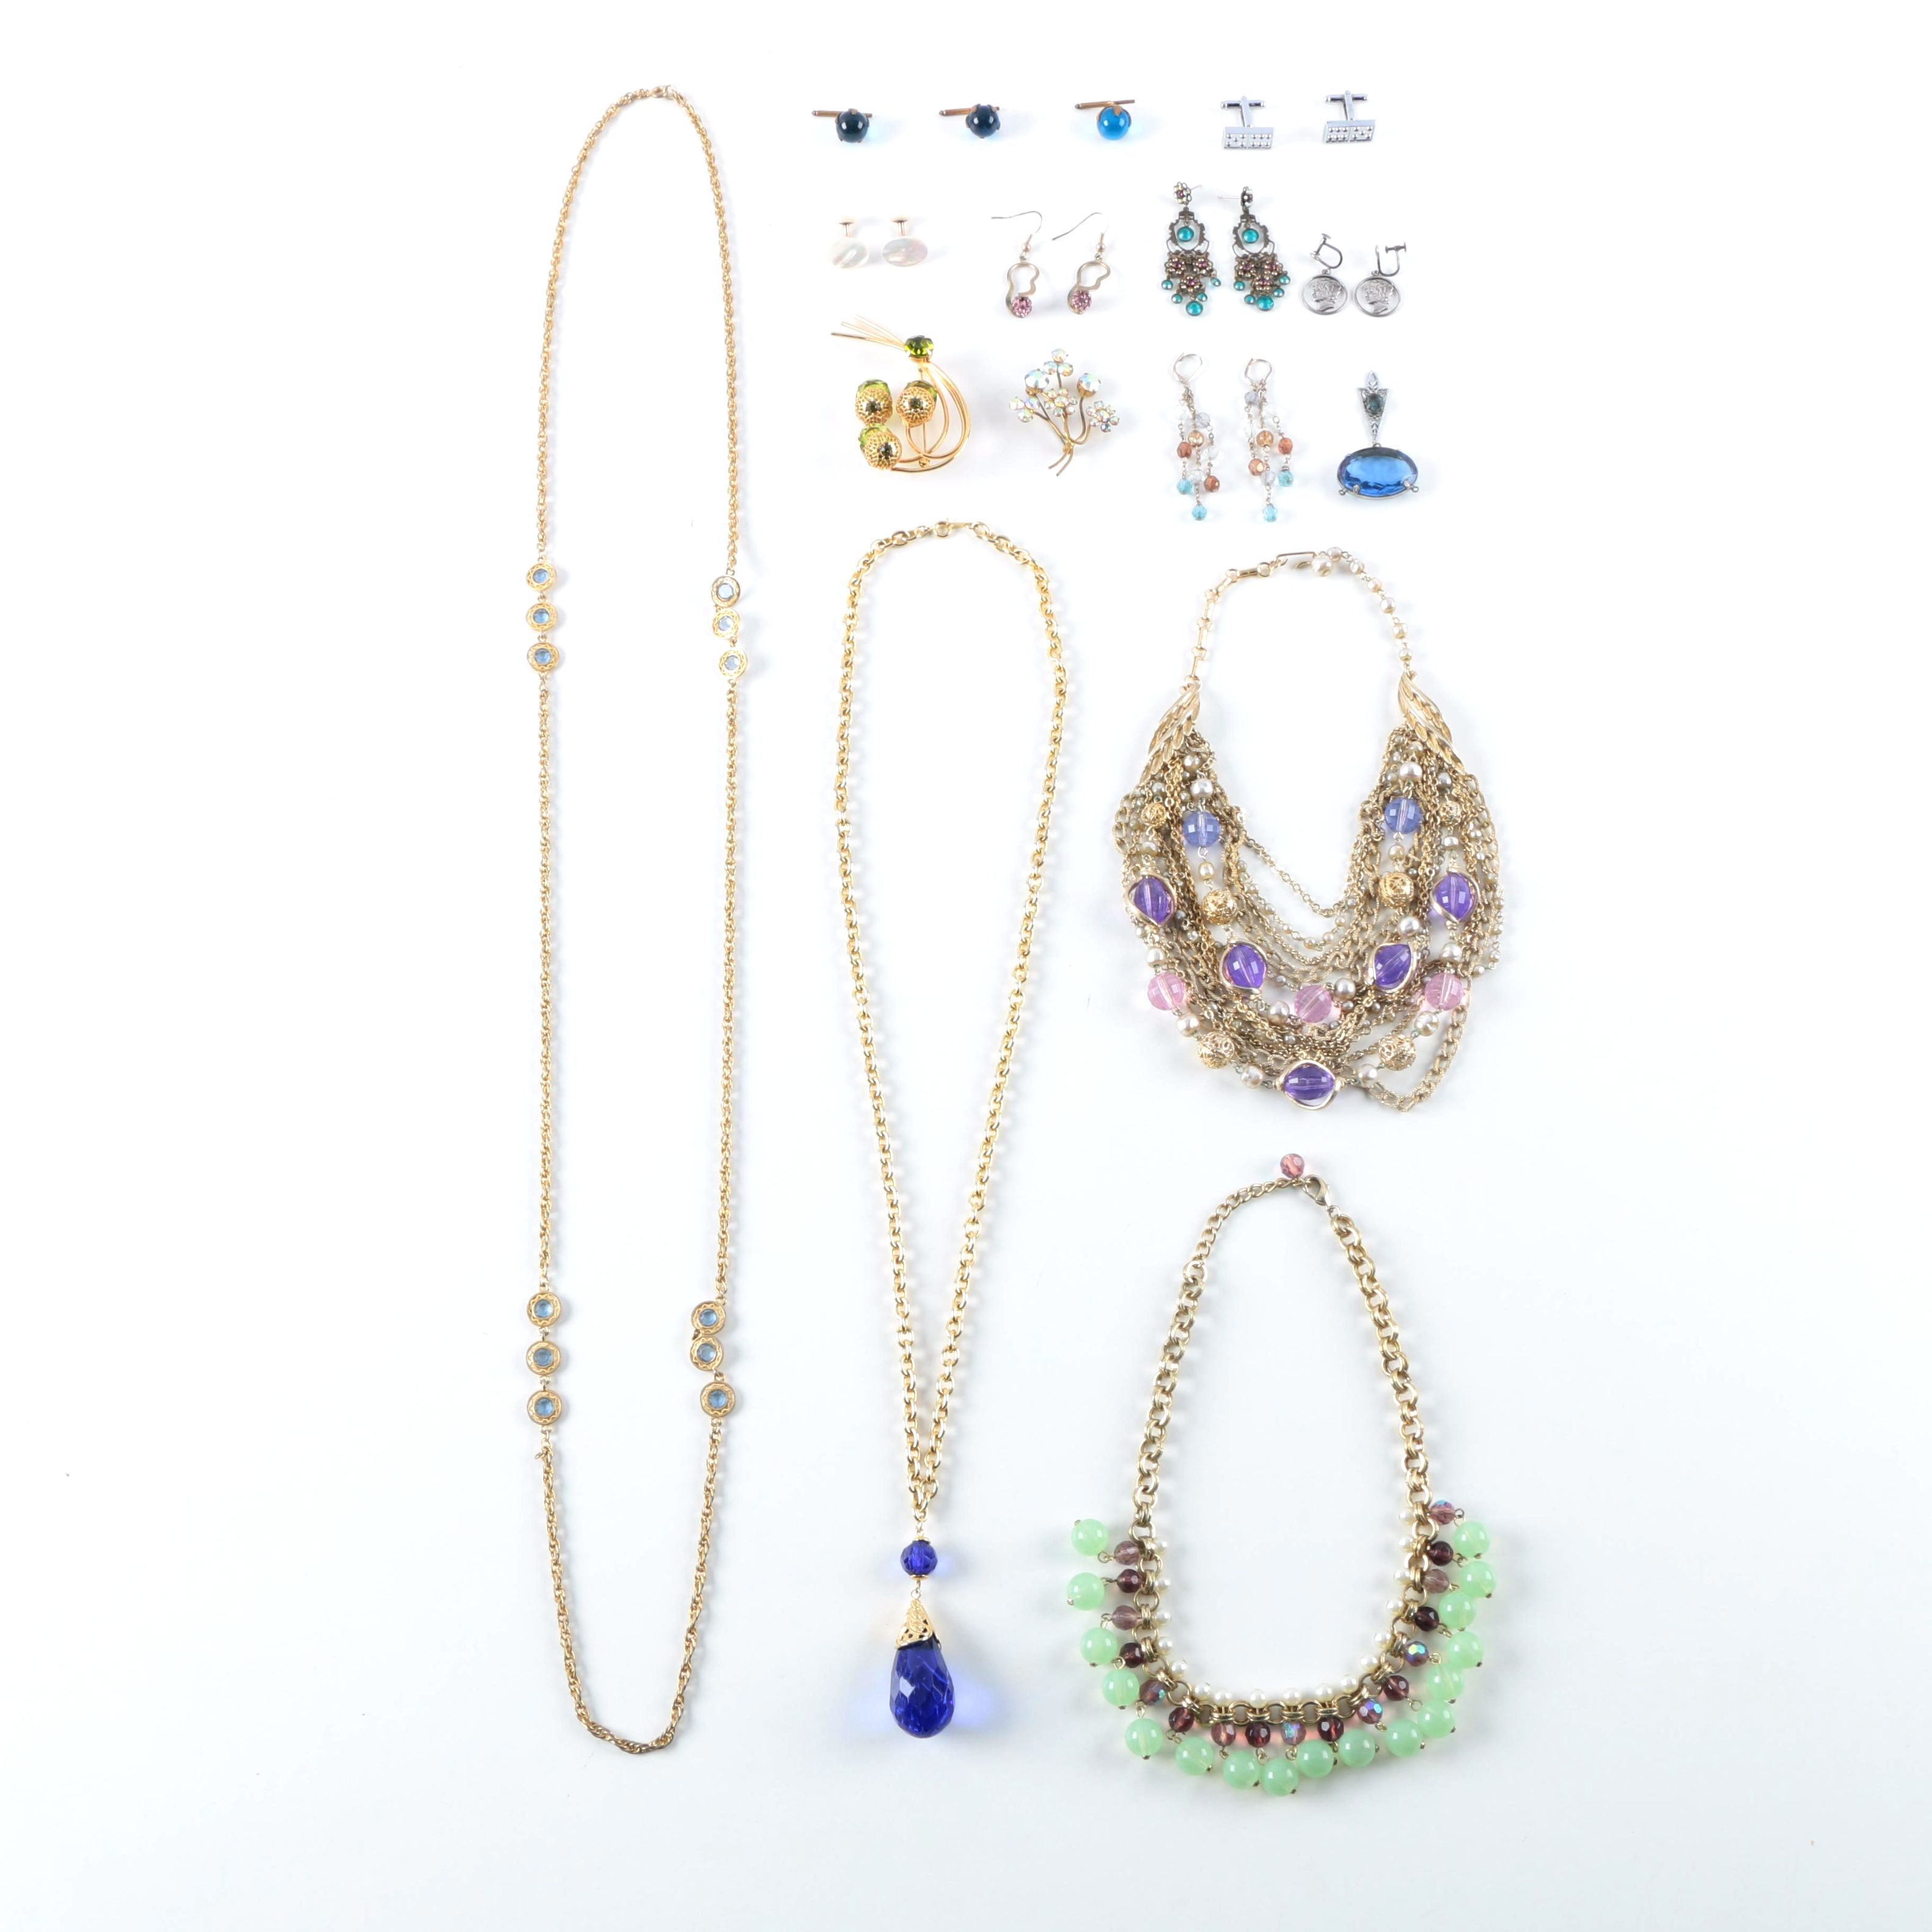 Assorted Costume Jewelry Including Sarah Coventry